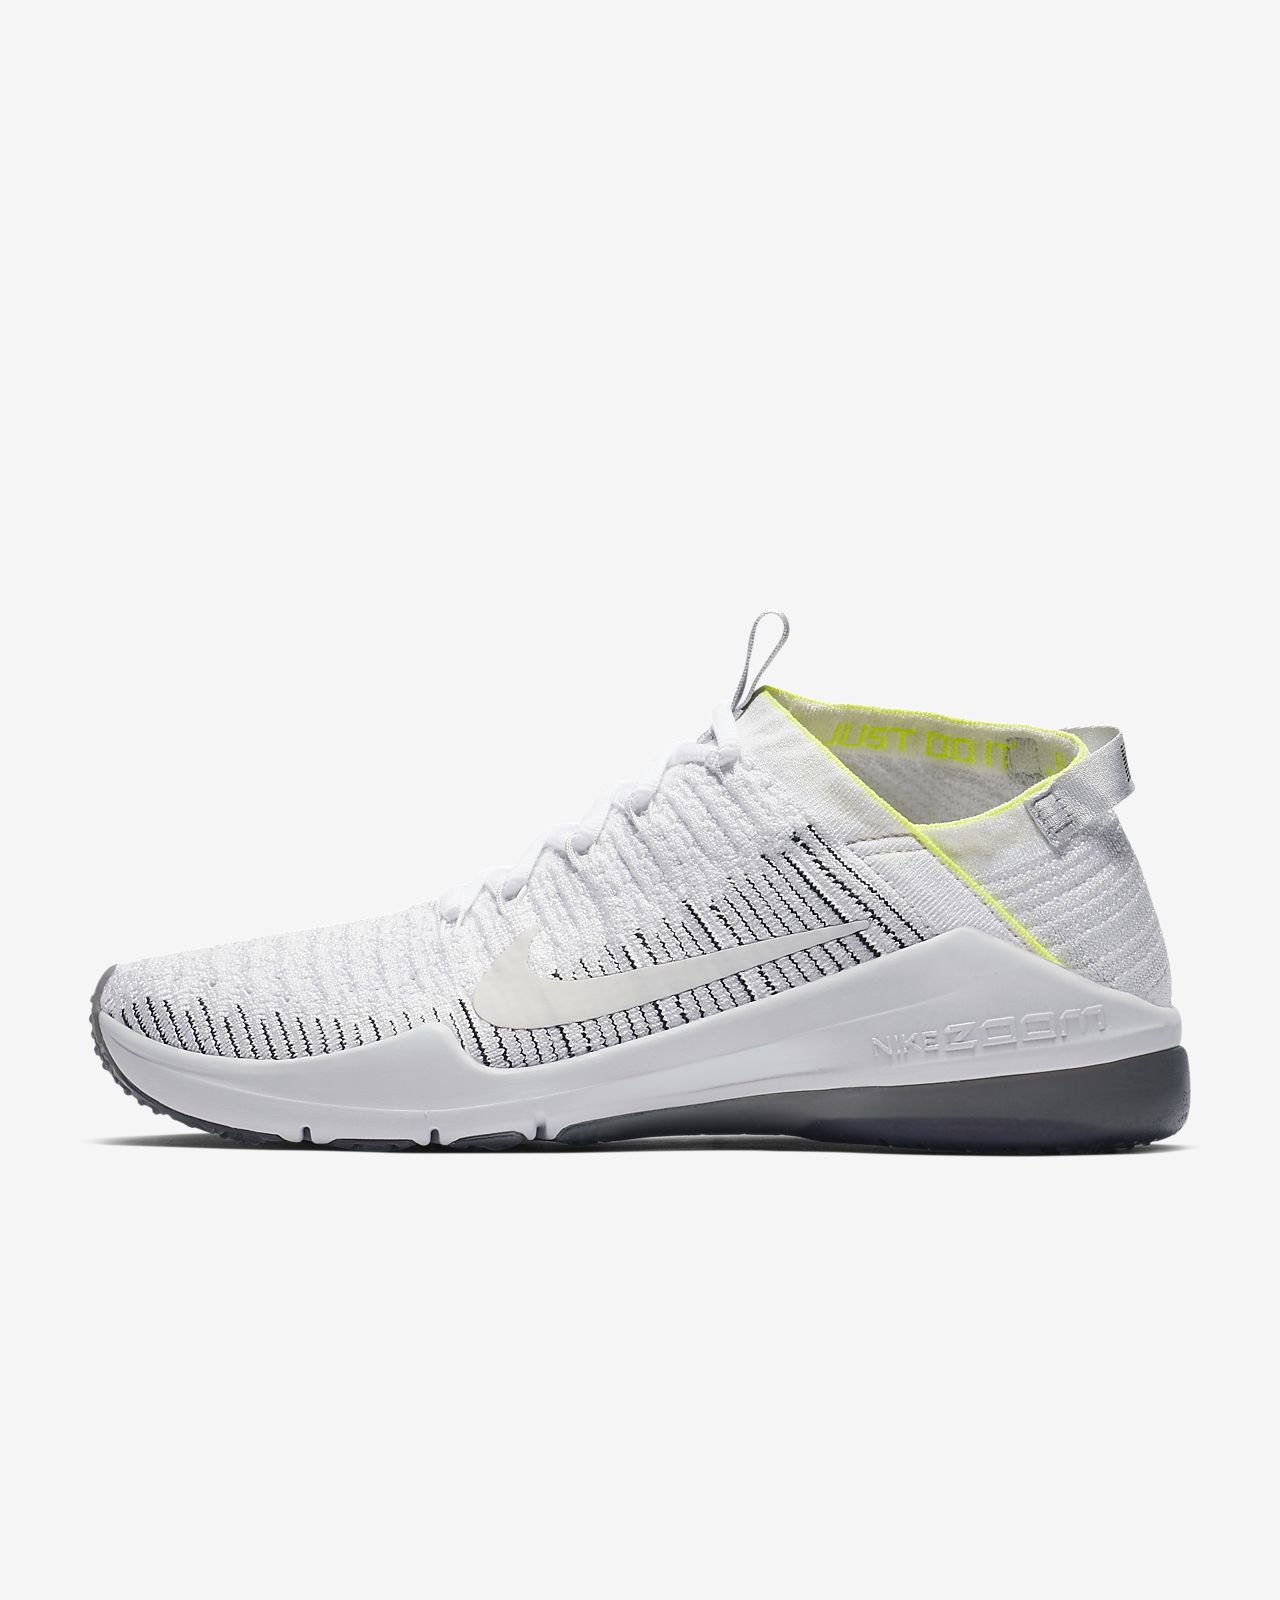 943a4a1f6acc42 ... Chaussure de training, boxe et fitness Nike Air Zoom Fearless Flyknit 2  pour Femme